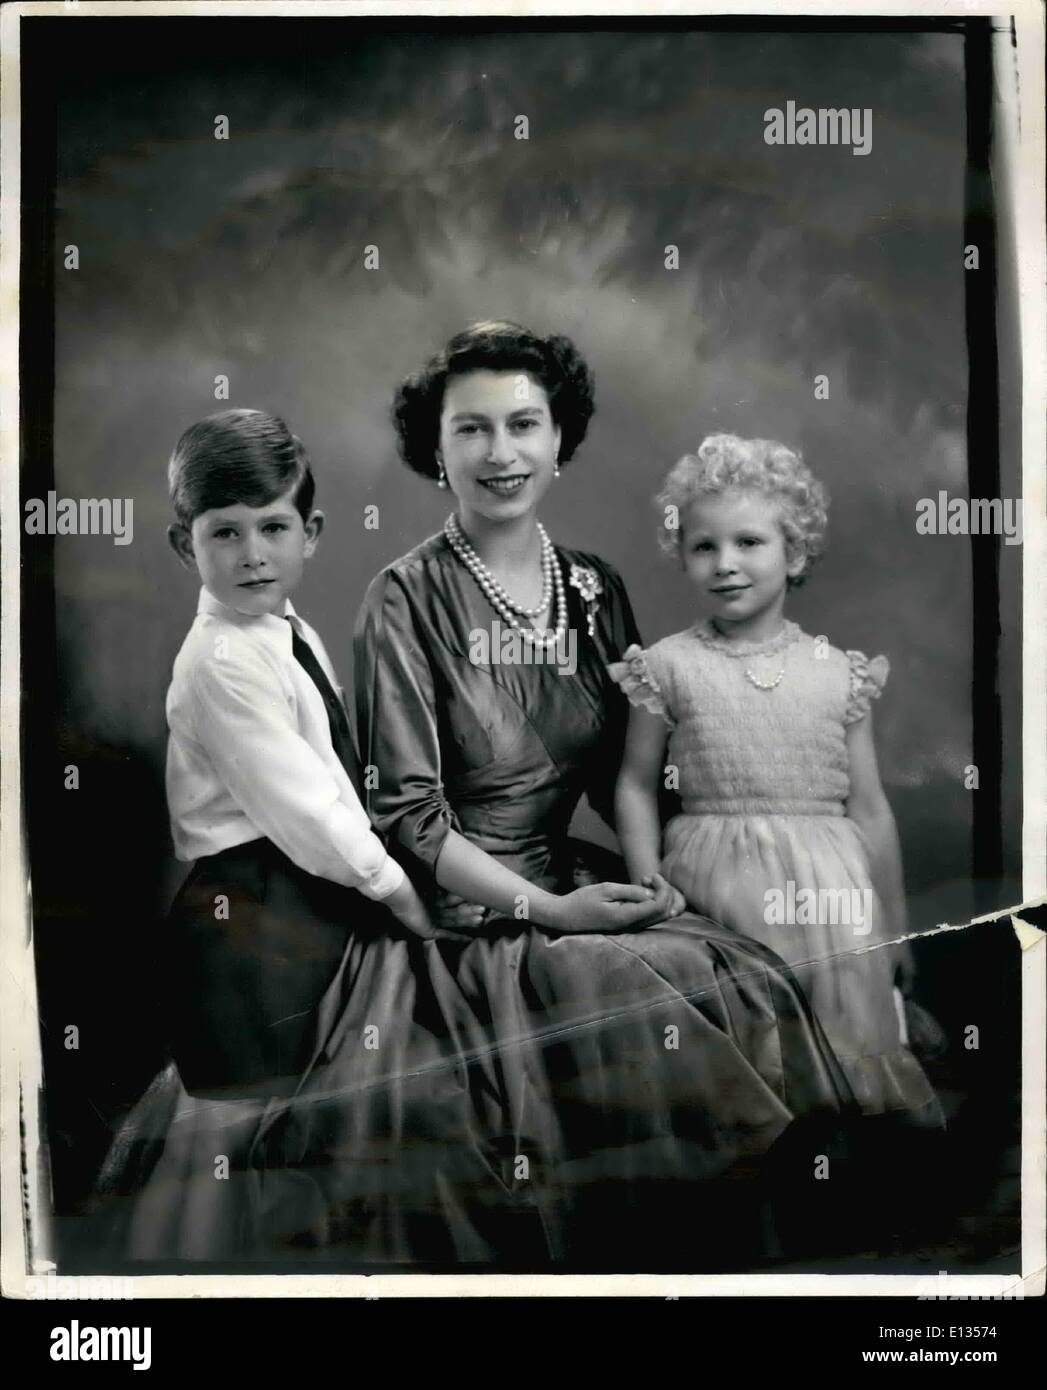 Feb. 28, 2012 - H.M. The Queen With H.R.H Prince Charles and H.R.H. Princess Anne. A new and harming study of H.M. The Queen with her two children Princes Charles and Princess Anne - by Mareus Adams. - Stock Image